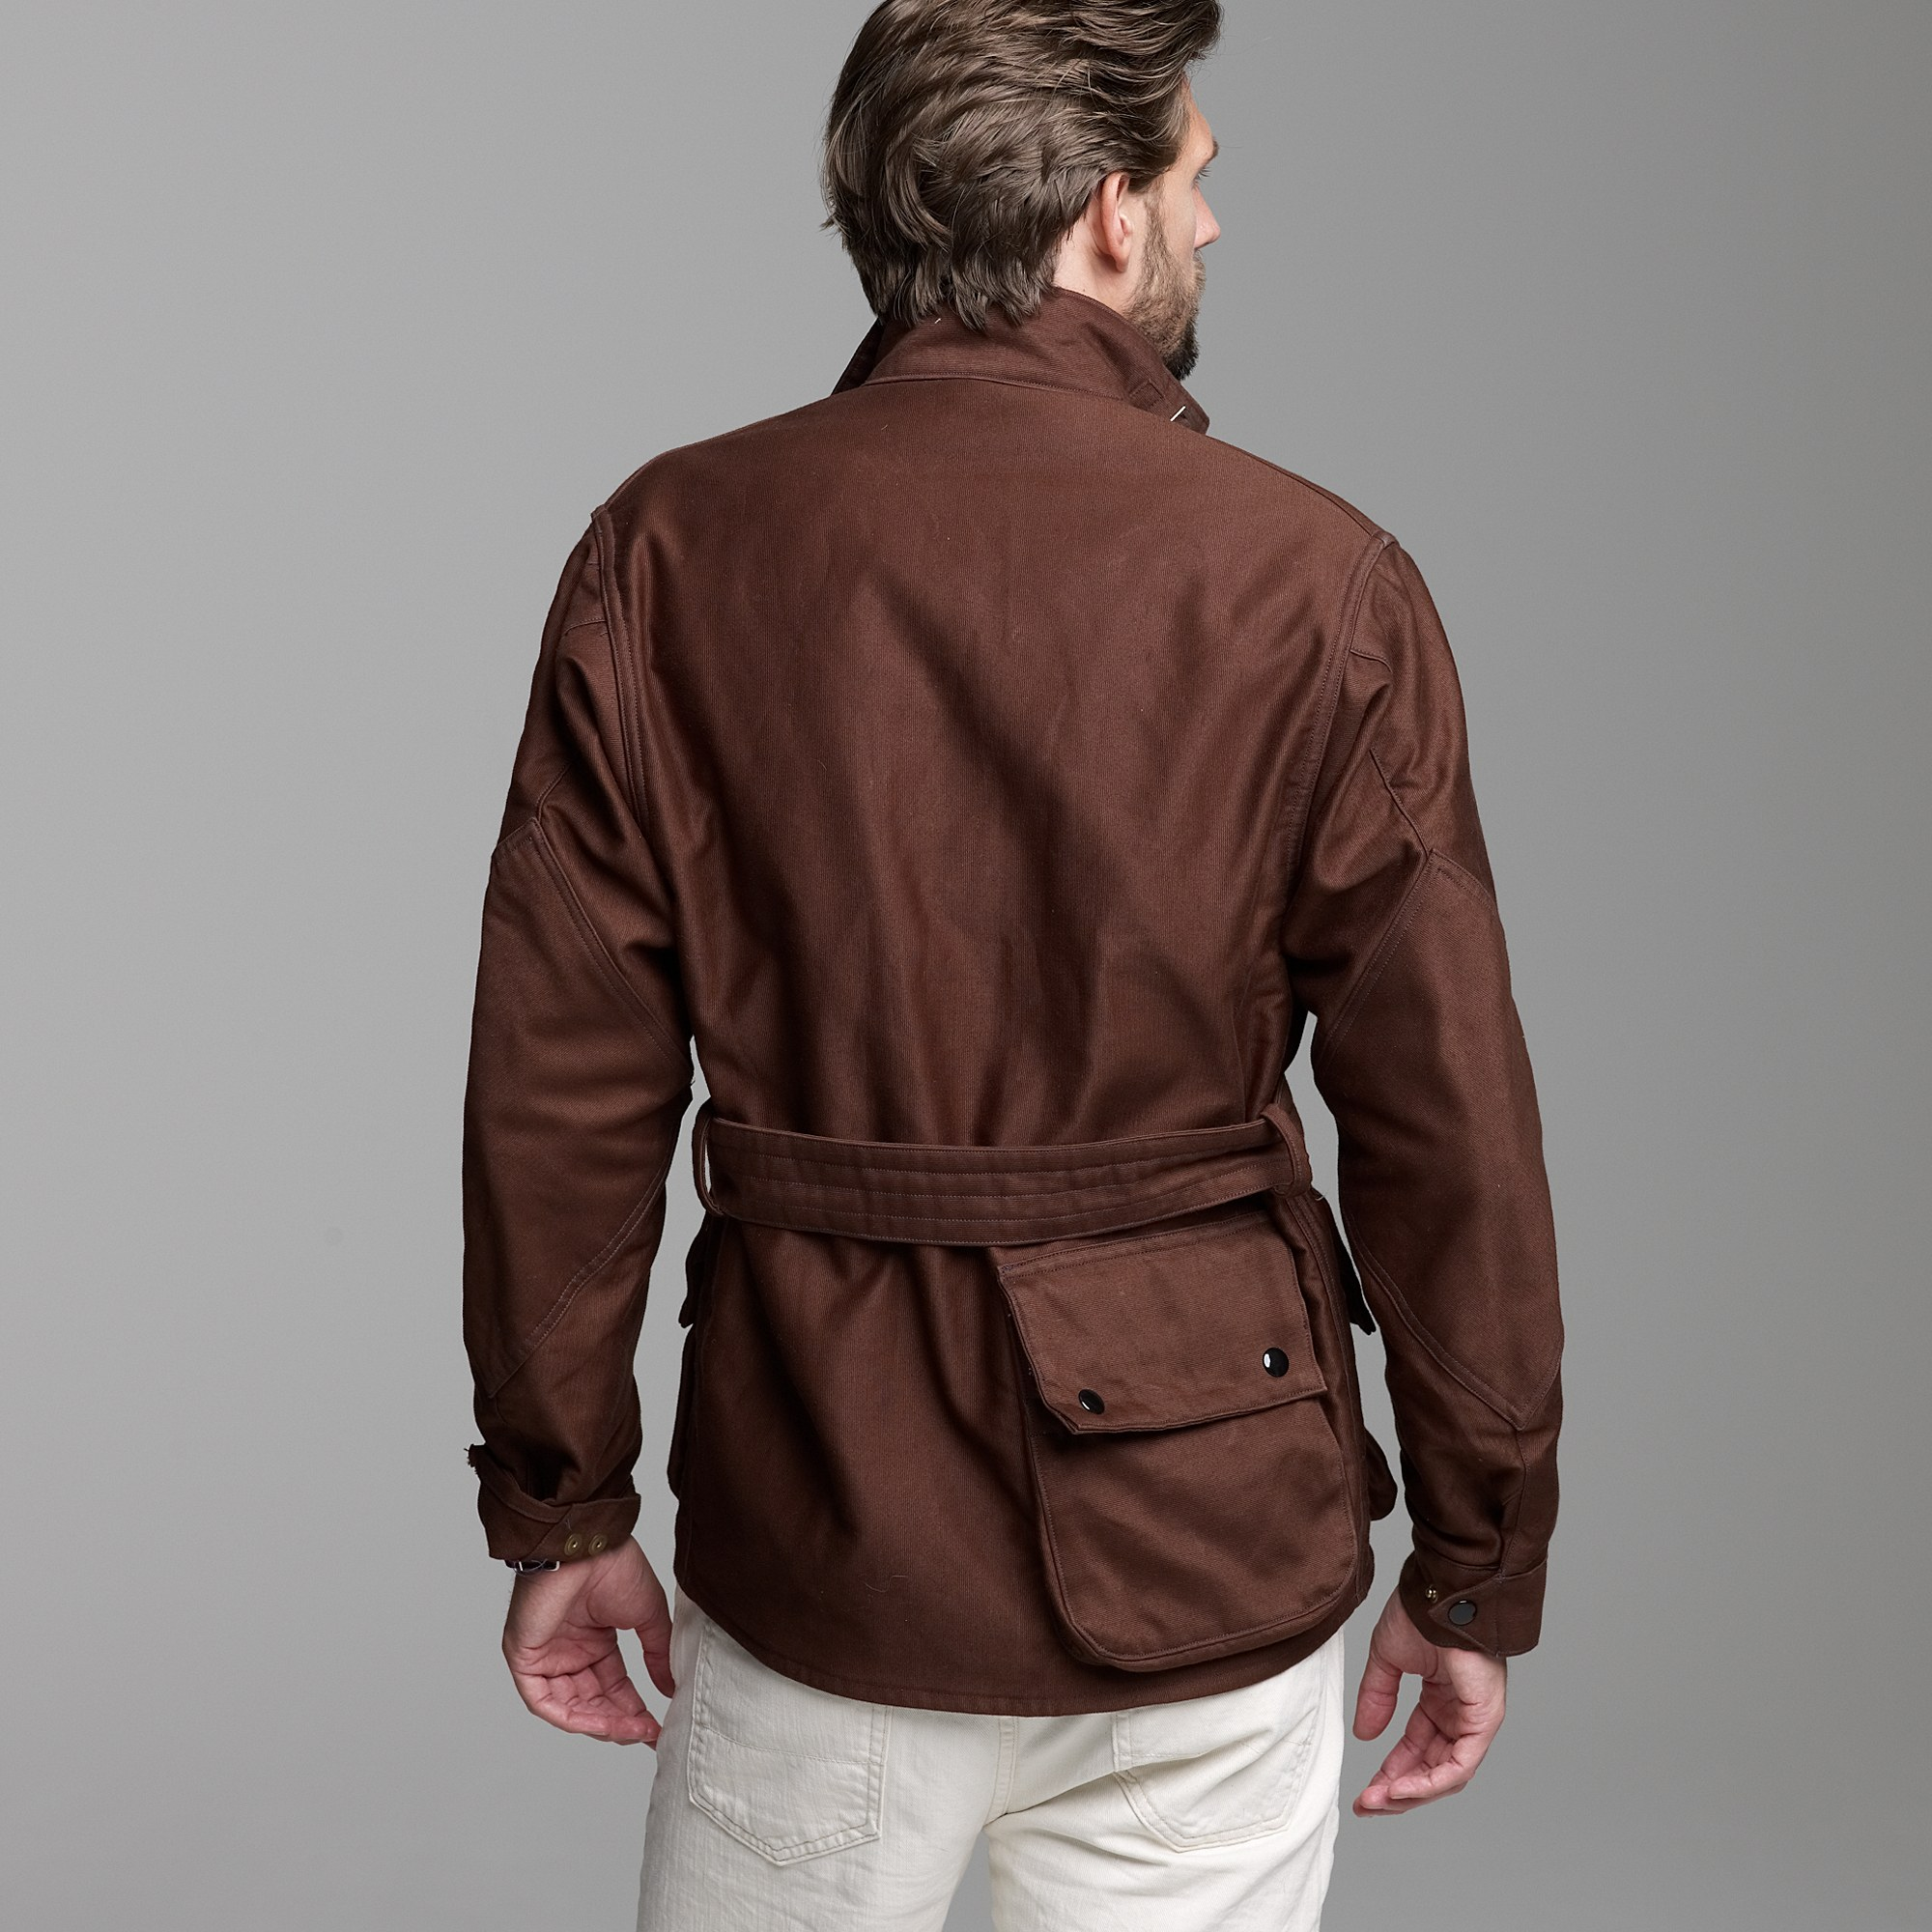 J Crew Mister Freedom 174 Mulholland Master Jacket In Brown